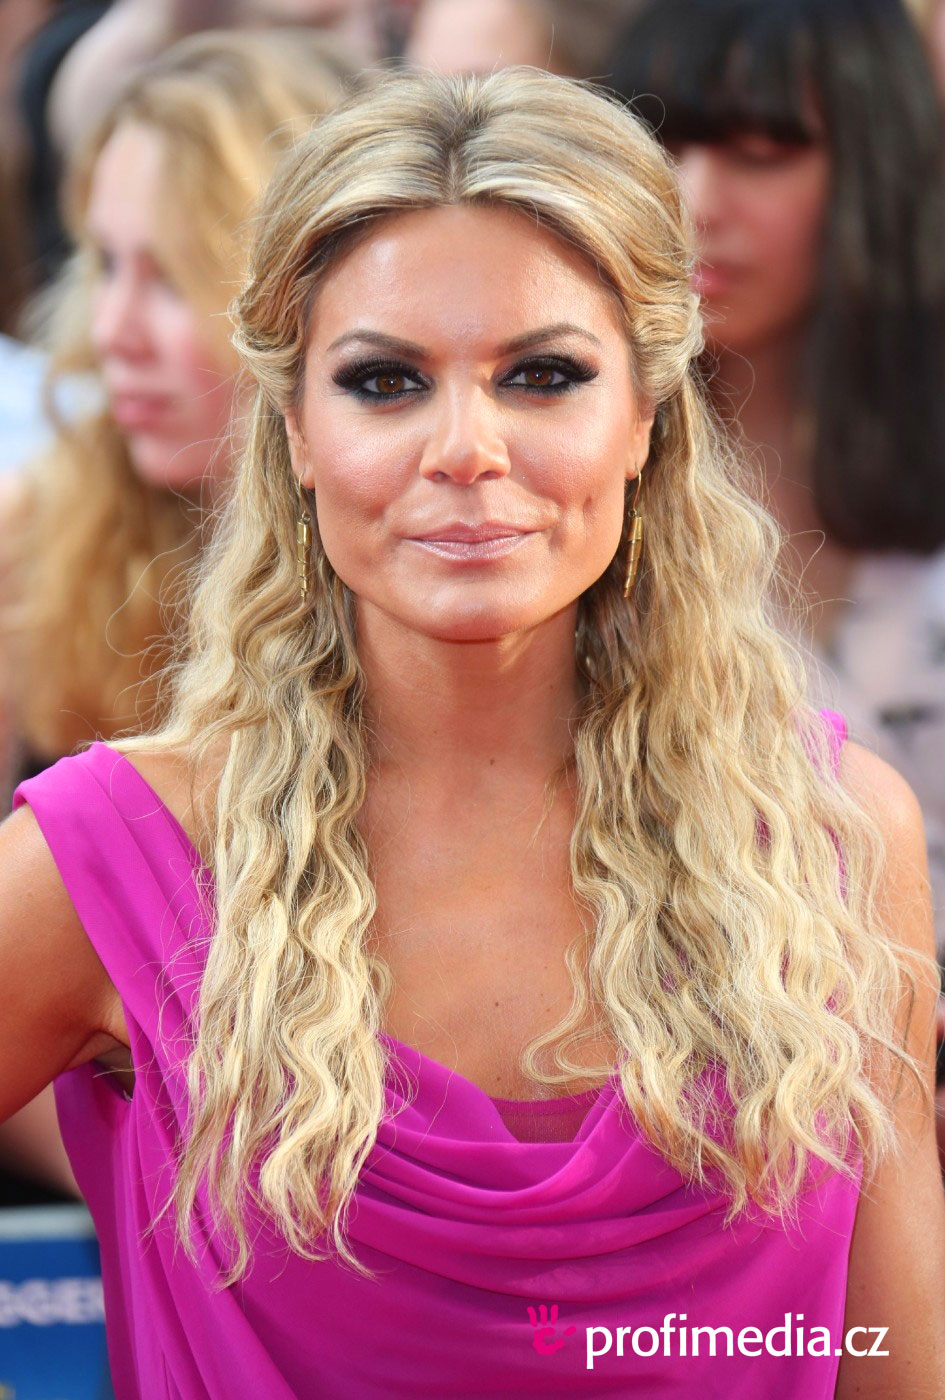 Charlotte Jackson Hairstyle Easyhairstyler